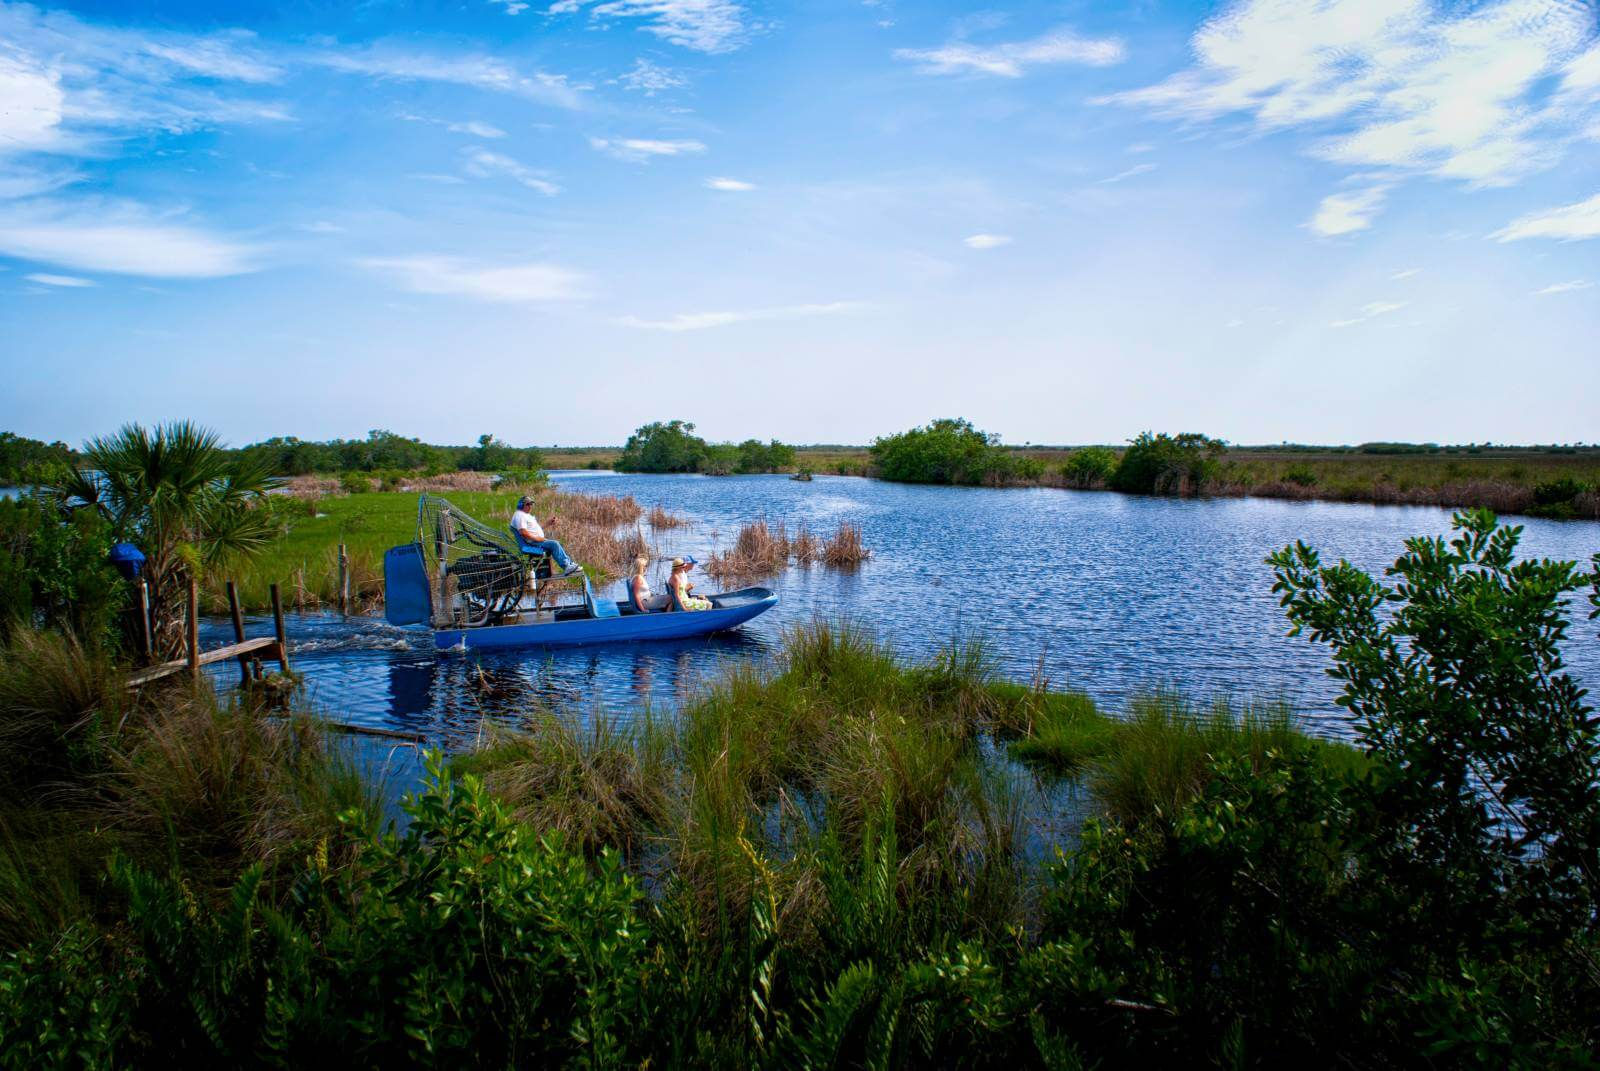 Experience the natural beauty of Naples and Marco Island, Florida with an exciting airboat tour in the Florida Everglades.